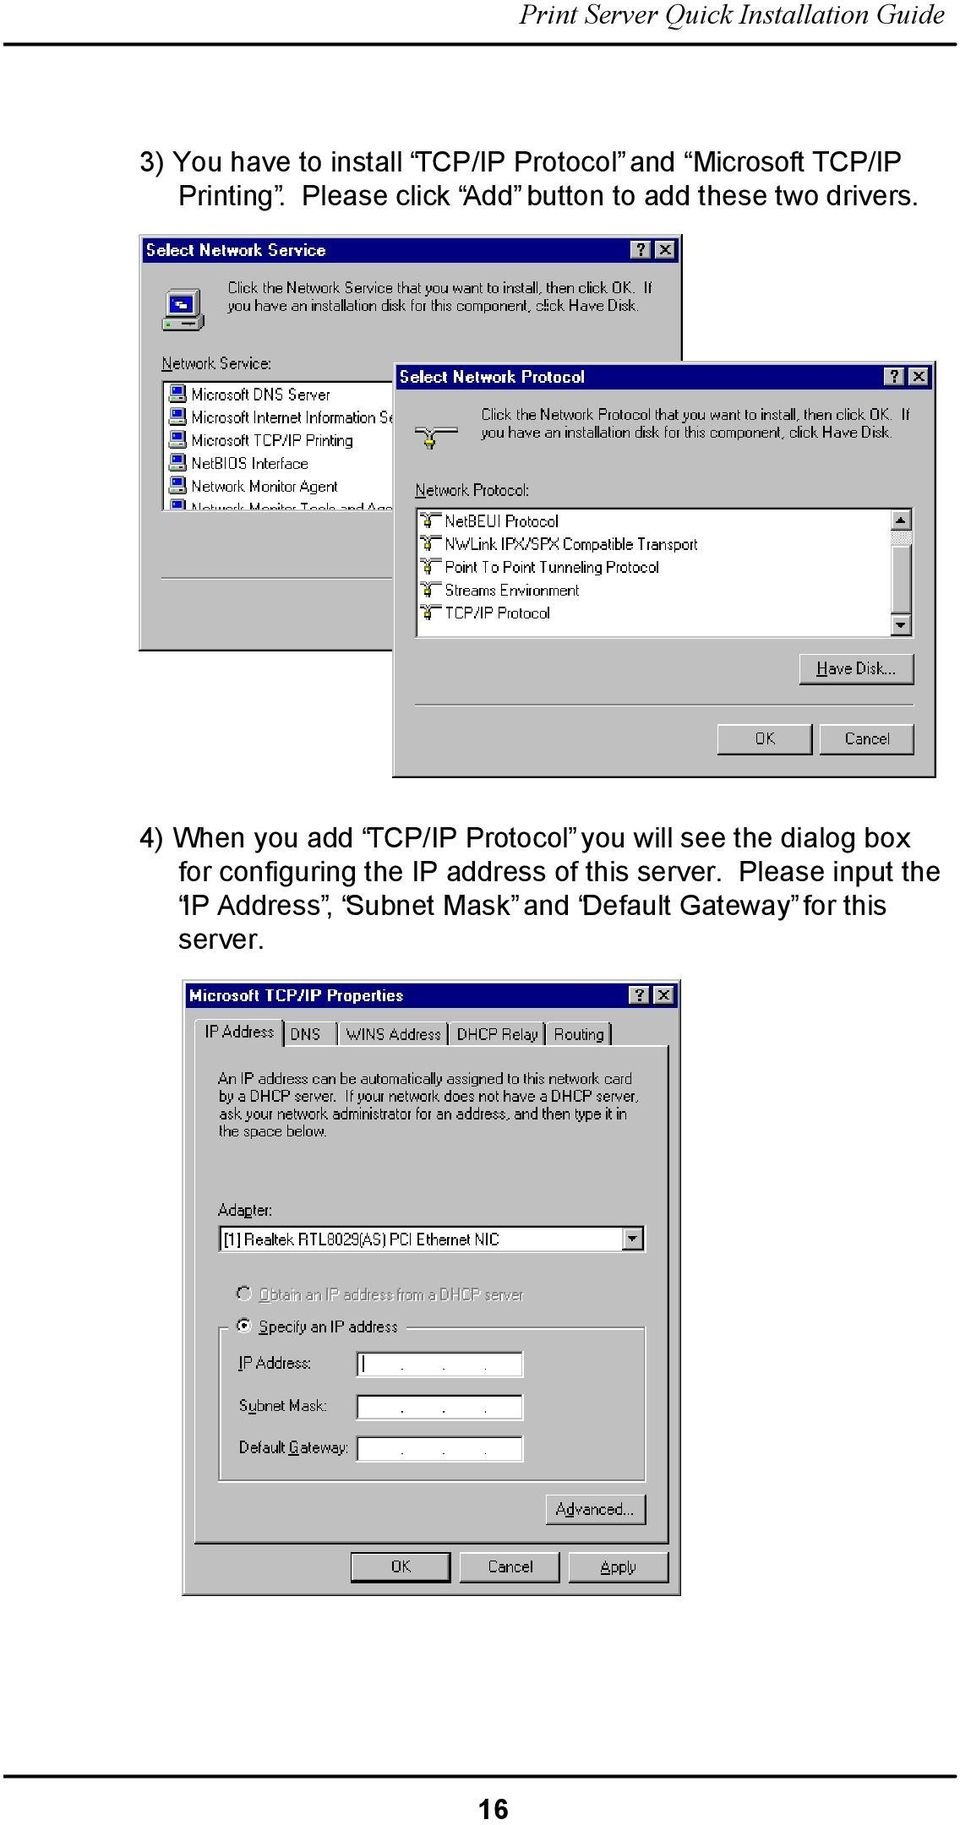 4) When you add TCP/IP Protocol you will see the dialog box for configuring